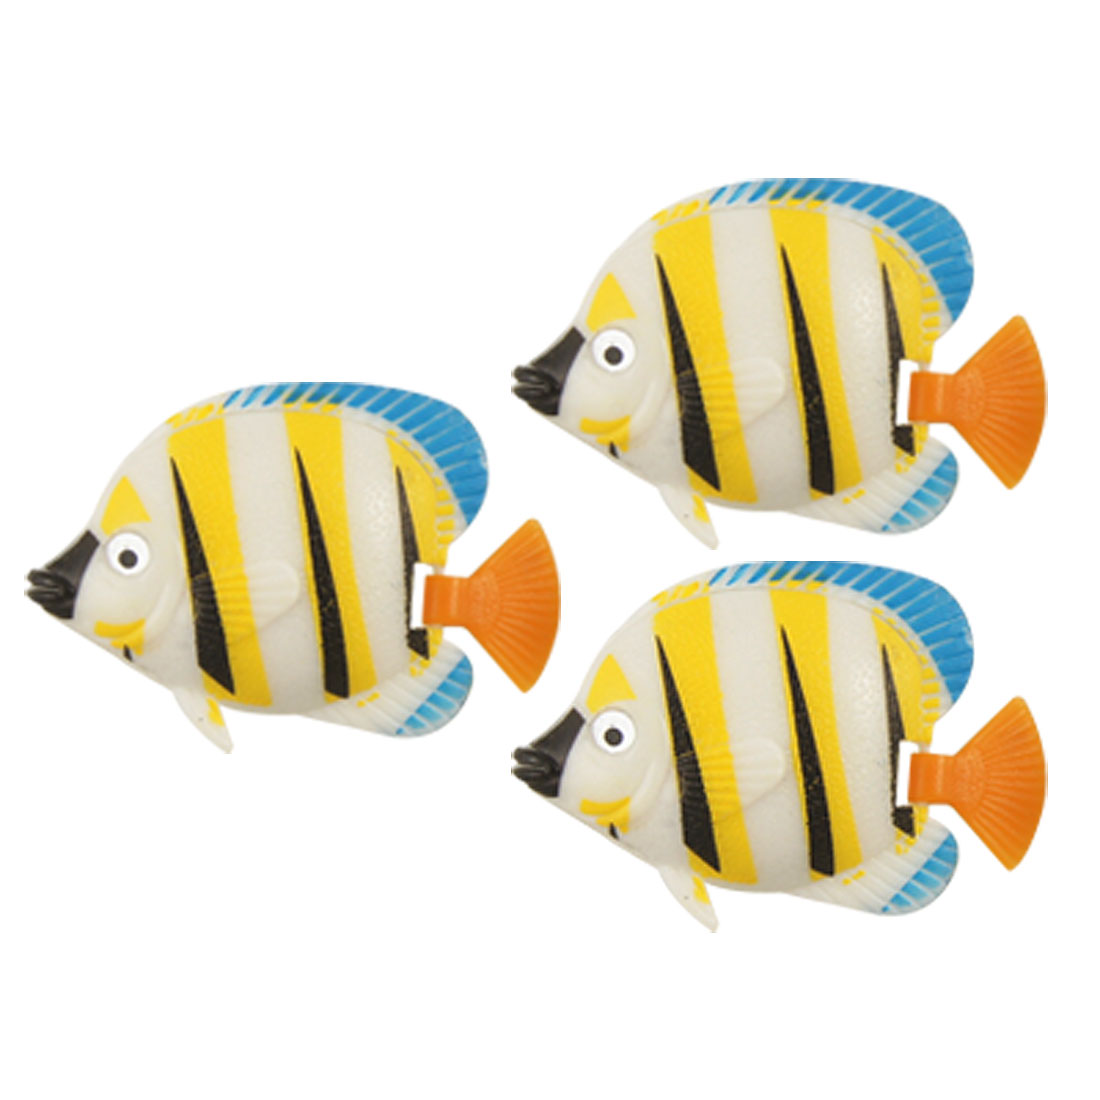 3 Pcs Aquarium Simulated Yellow Plastic Wiggly Tail Fishes